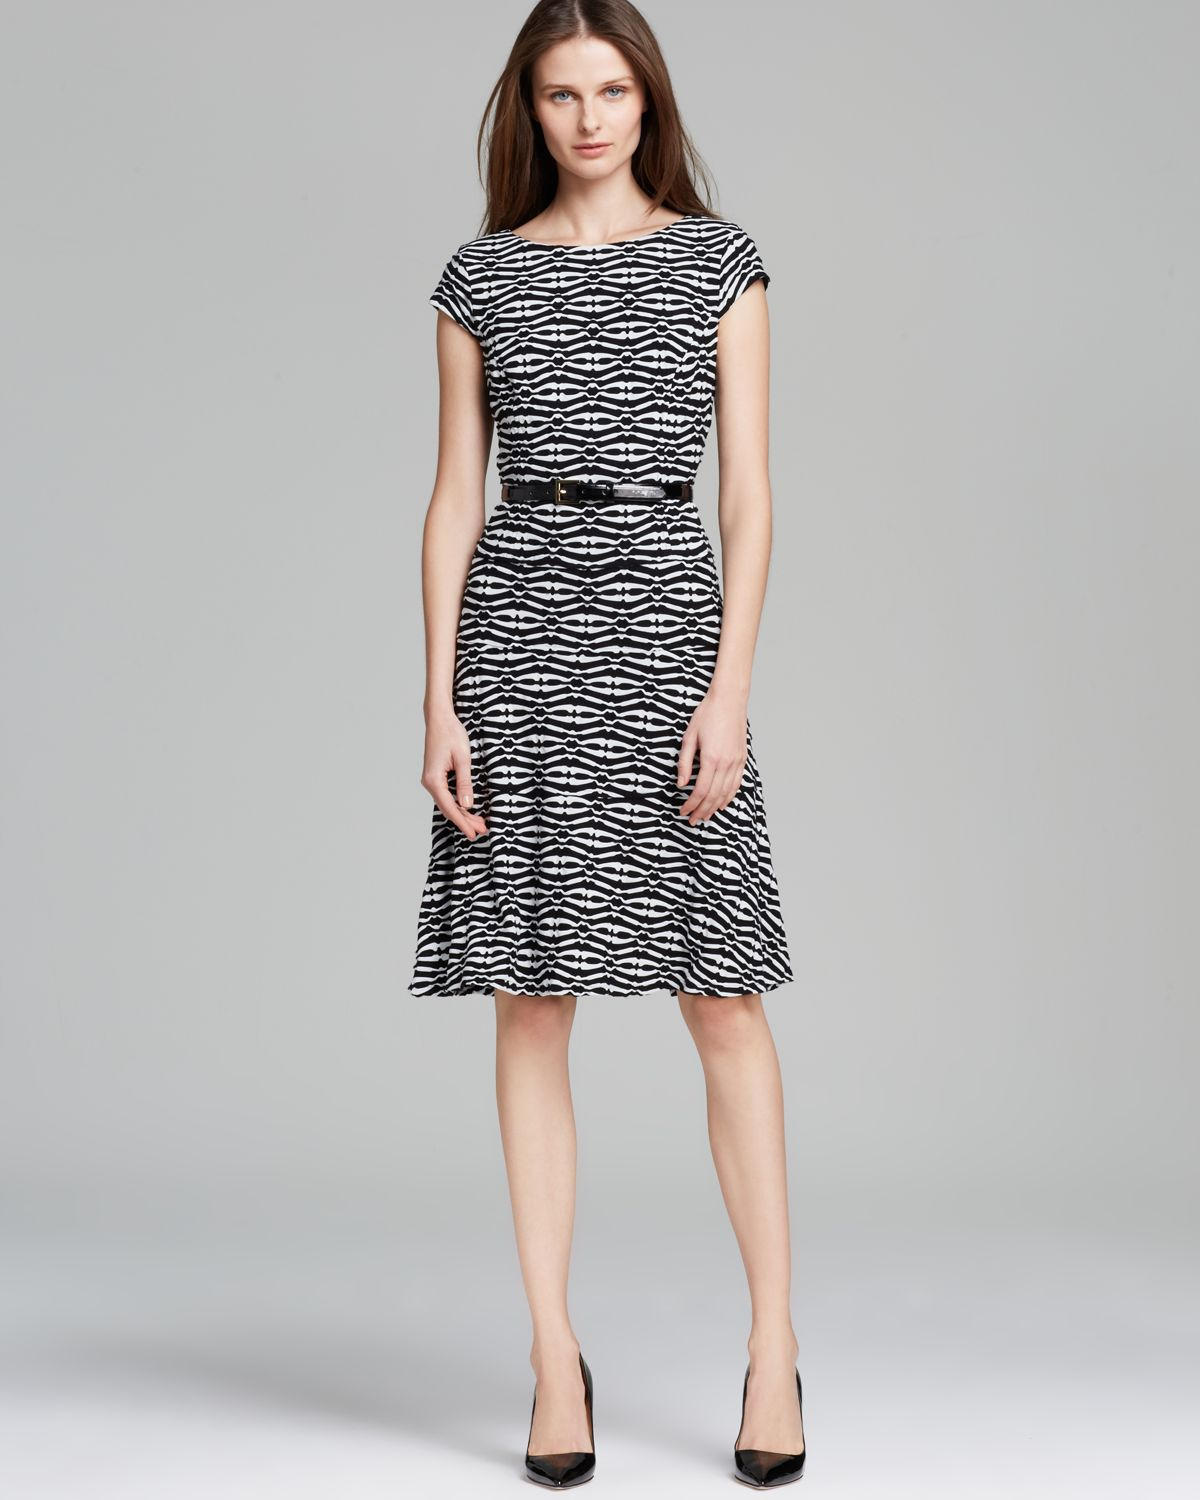 Vince Camuto Dresses